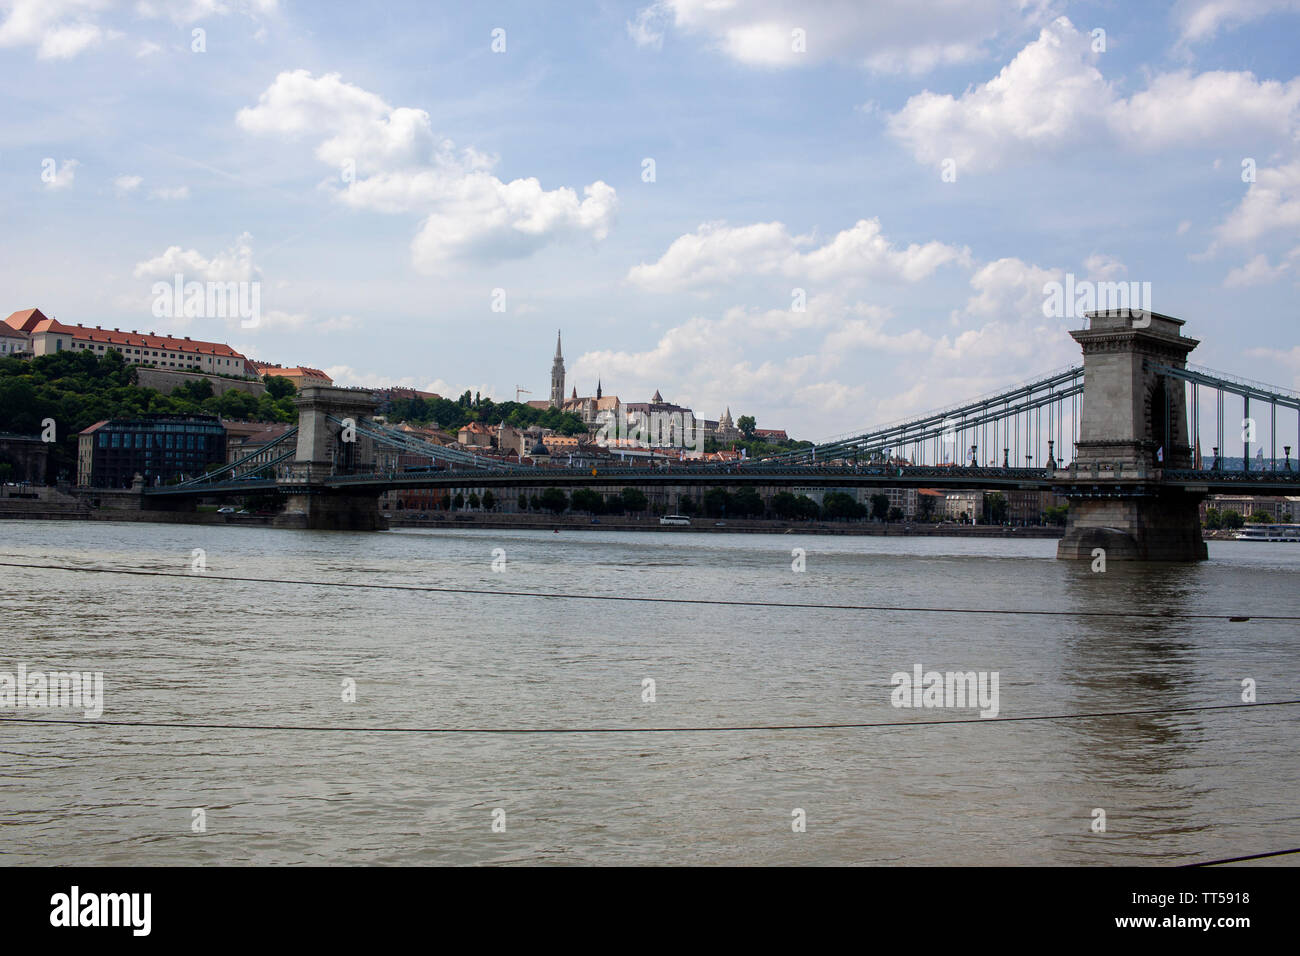 A view of the Scechenyi Chain Bridge across the River Danube. Lewis Mitchell. - Stock Image